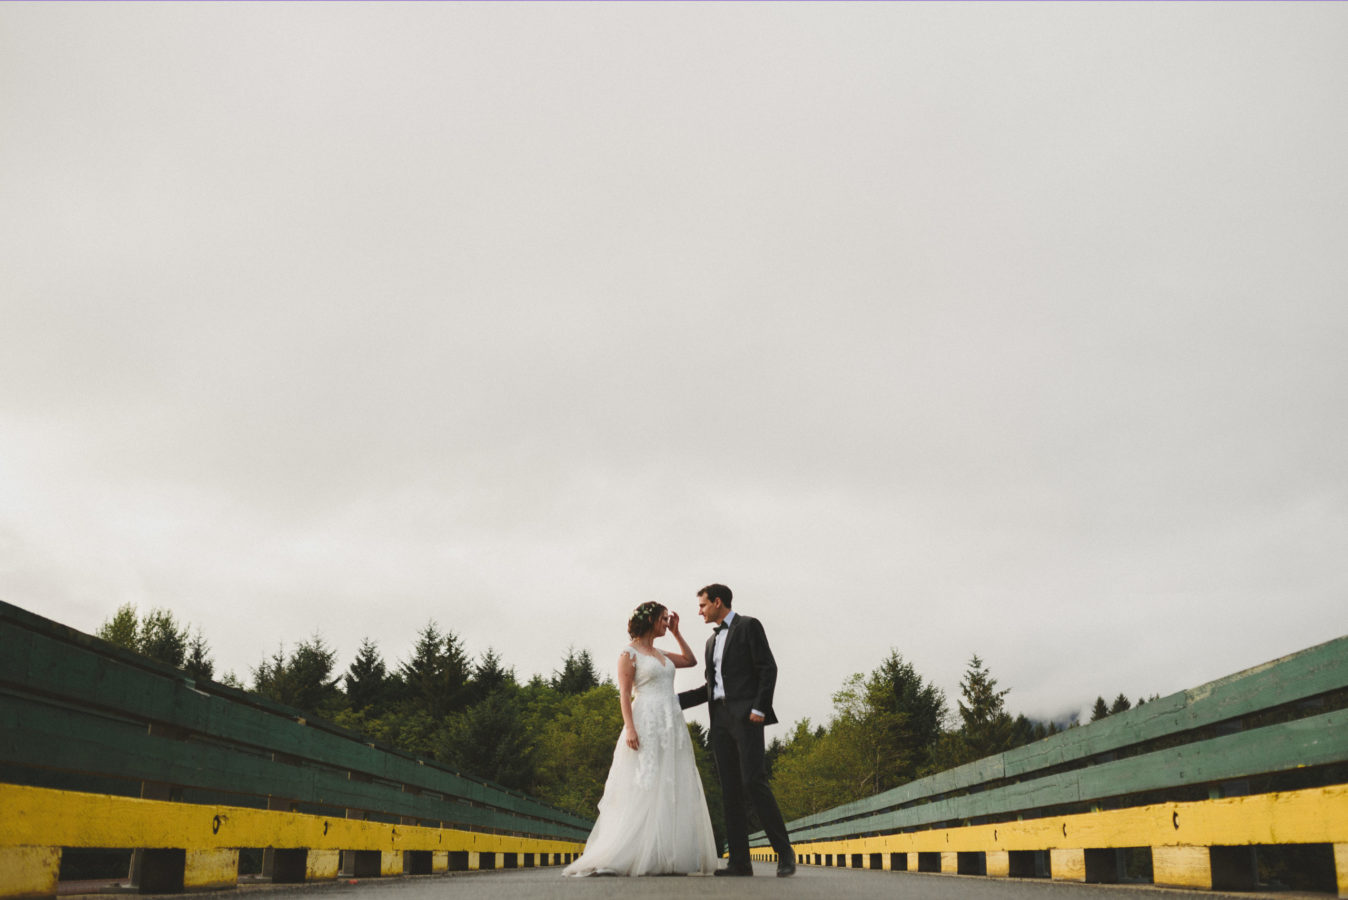 bride and groom on a bridge looking at one another